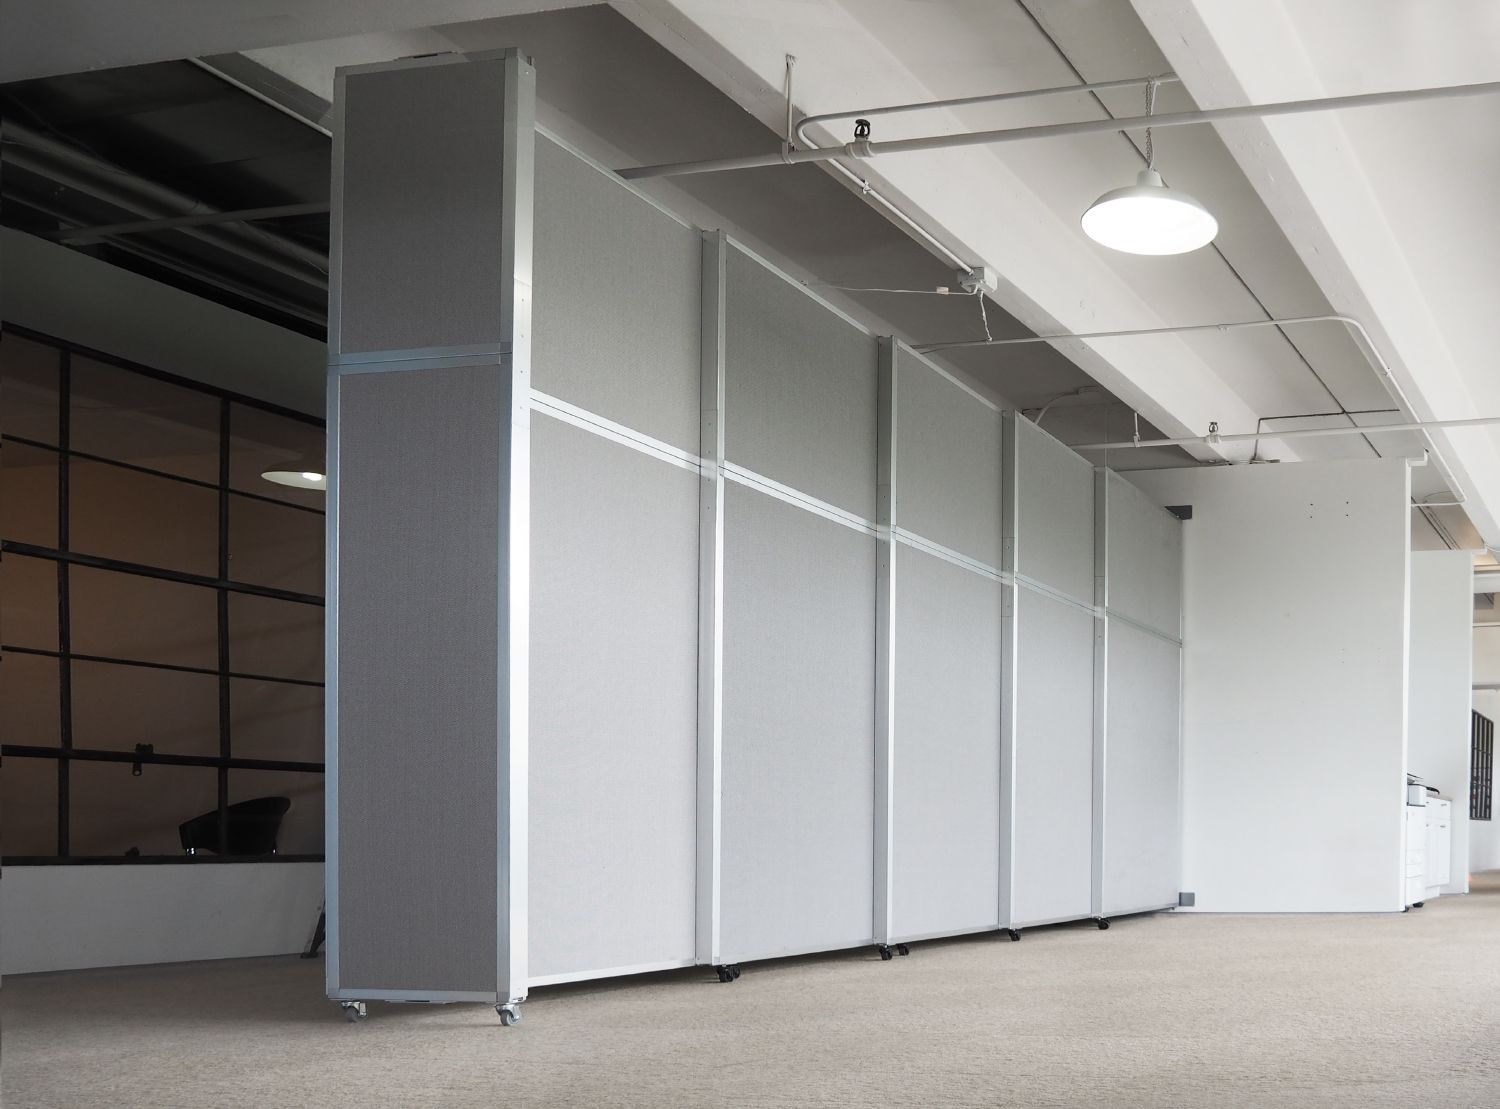 The Operable Wall Panels Can Be Covered In Over 20 Shades